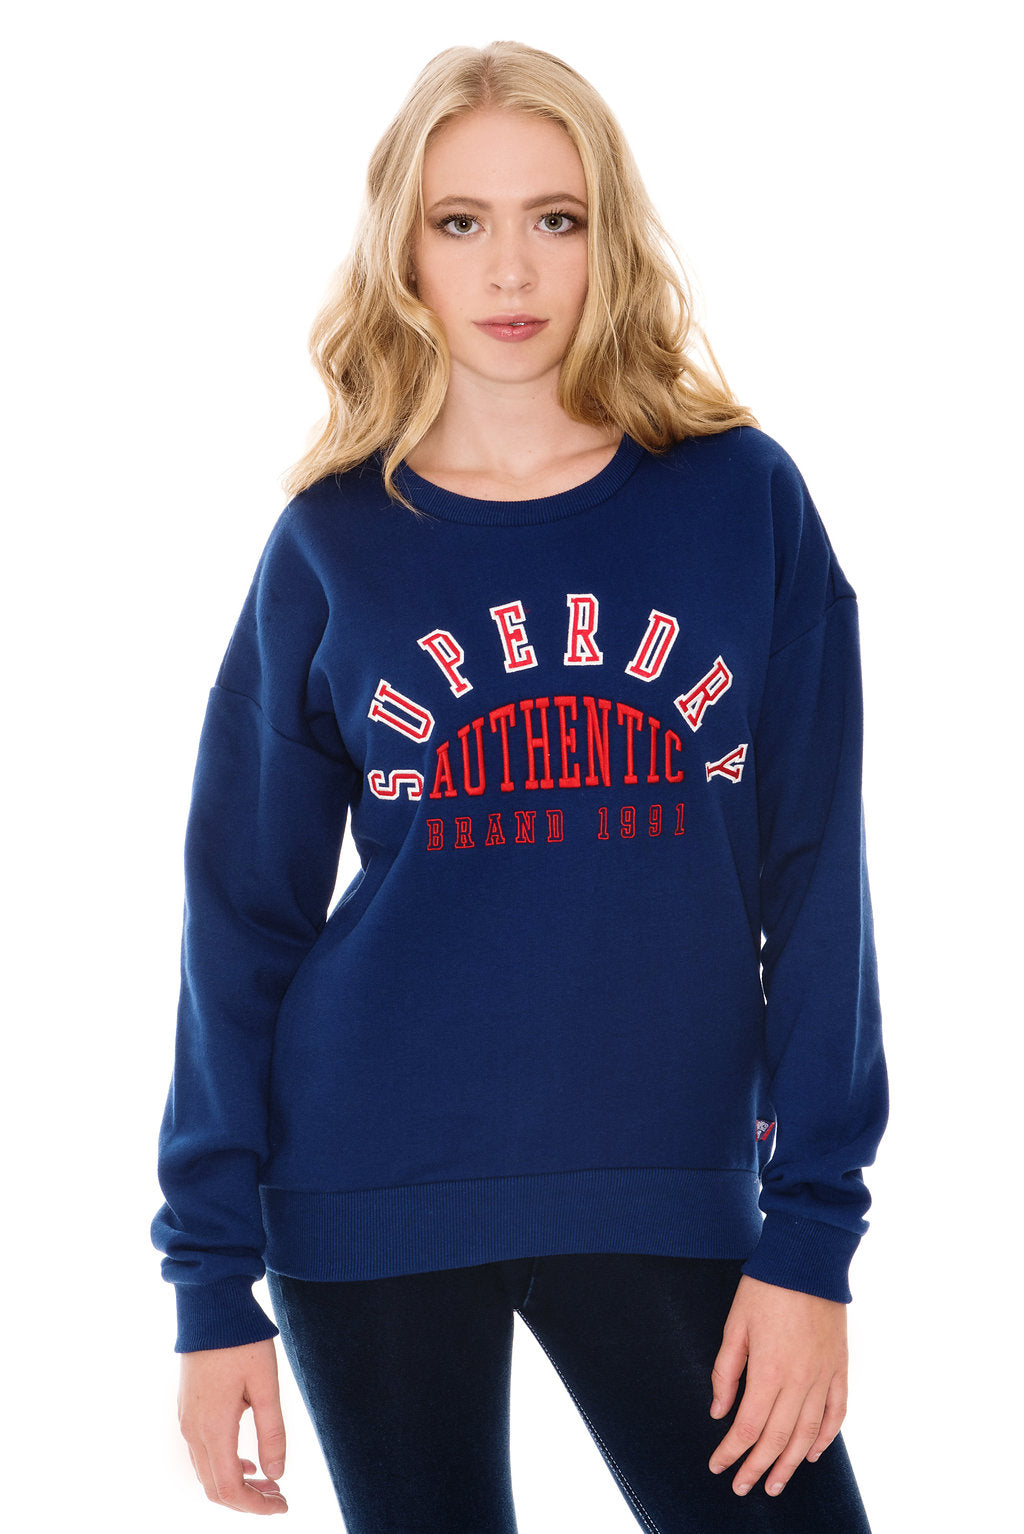 SUPERDRY URBAN STREET APPLIQUE SWEATSHIRT - SOFT NAVY